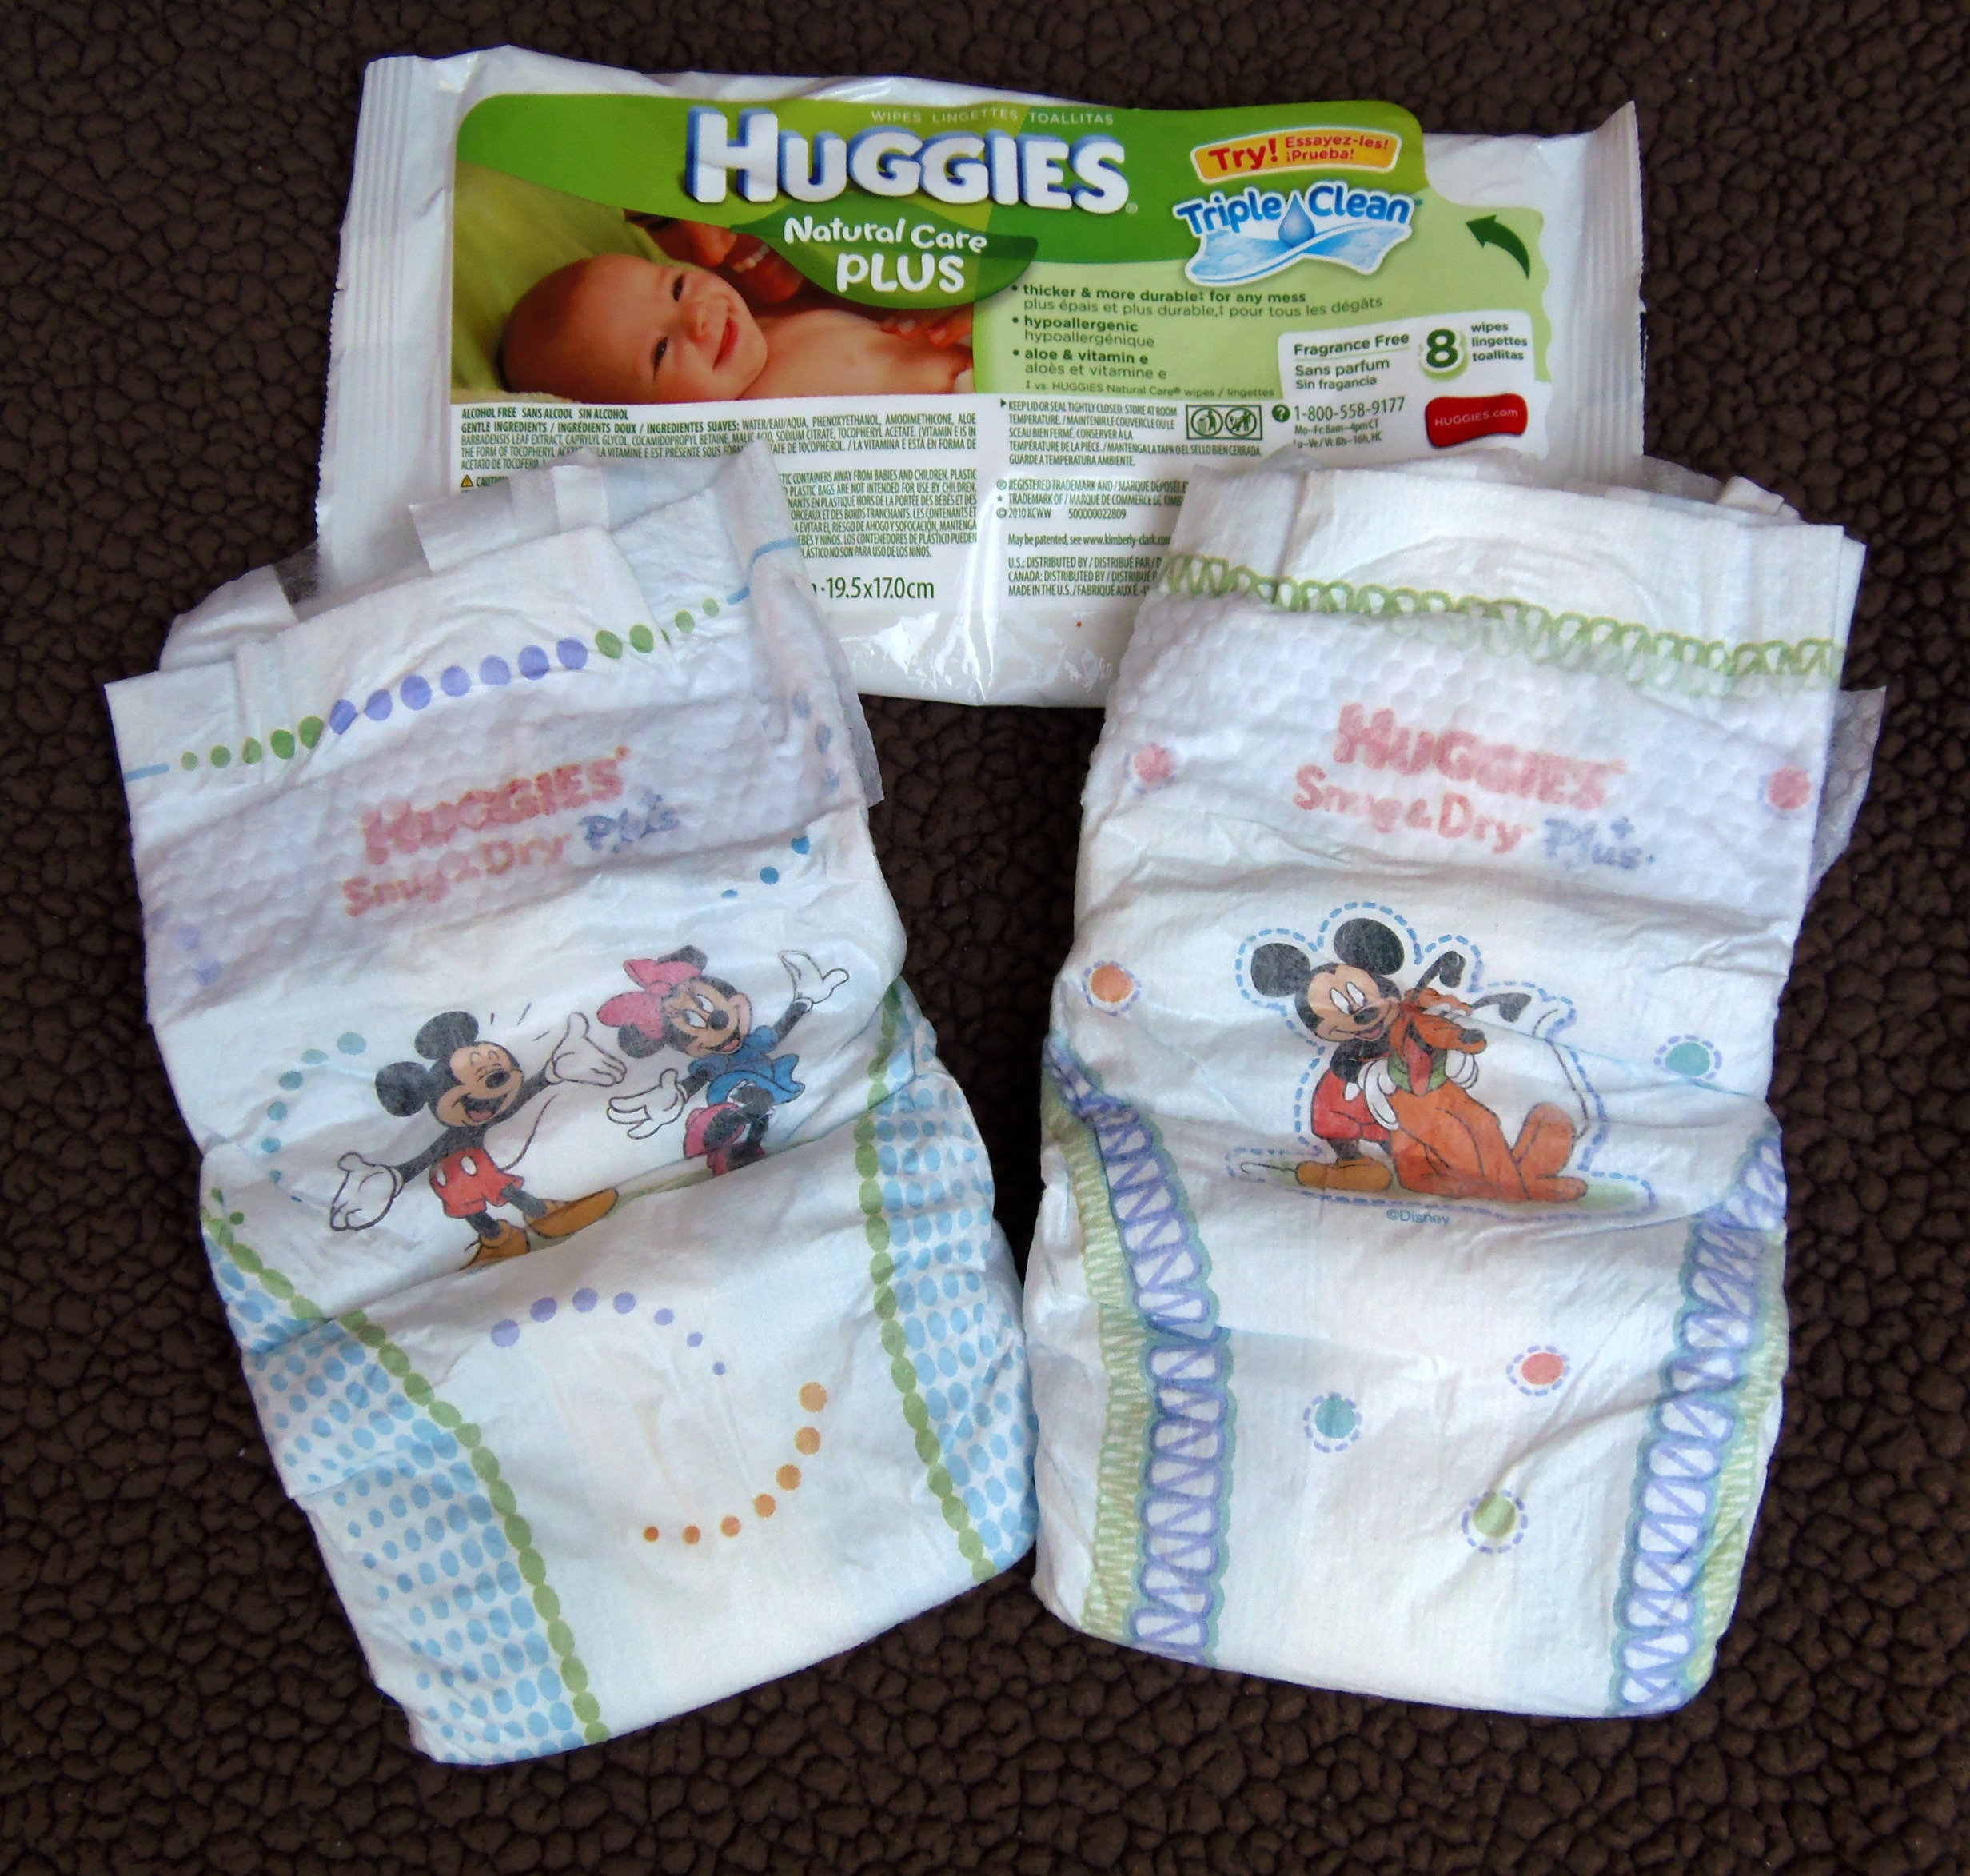 These tiny diapers fit babies less than 2 pounds | New York's PIX11 / WPIX-TV